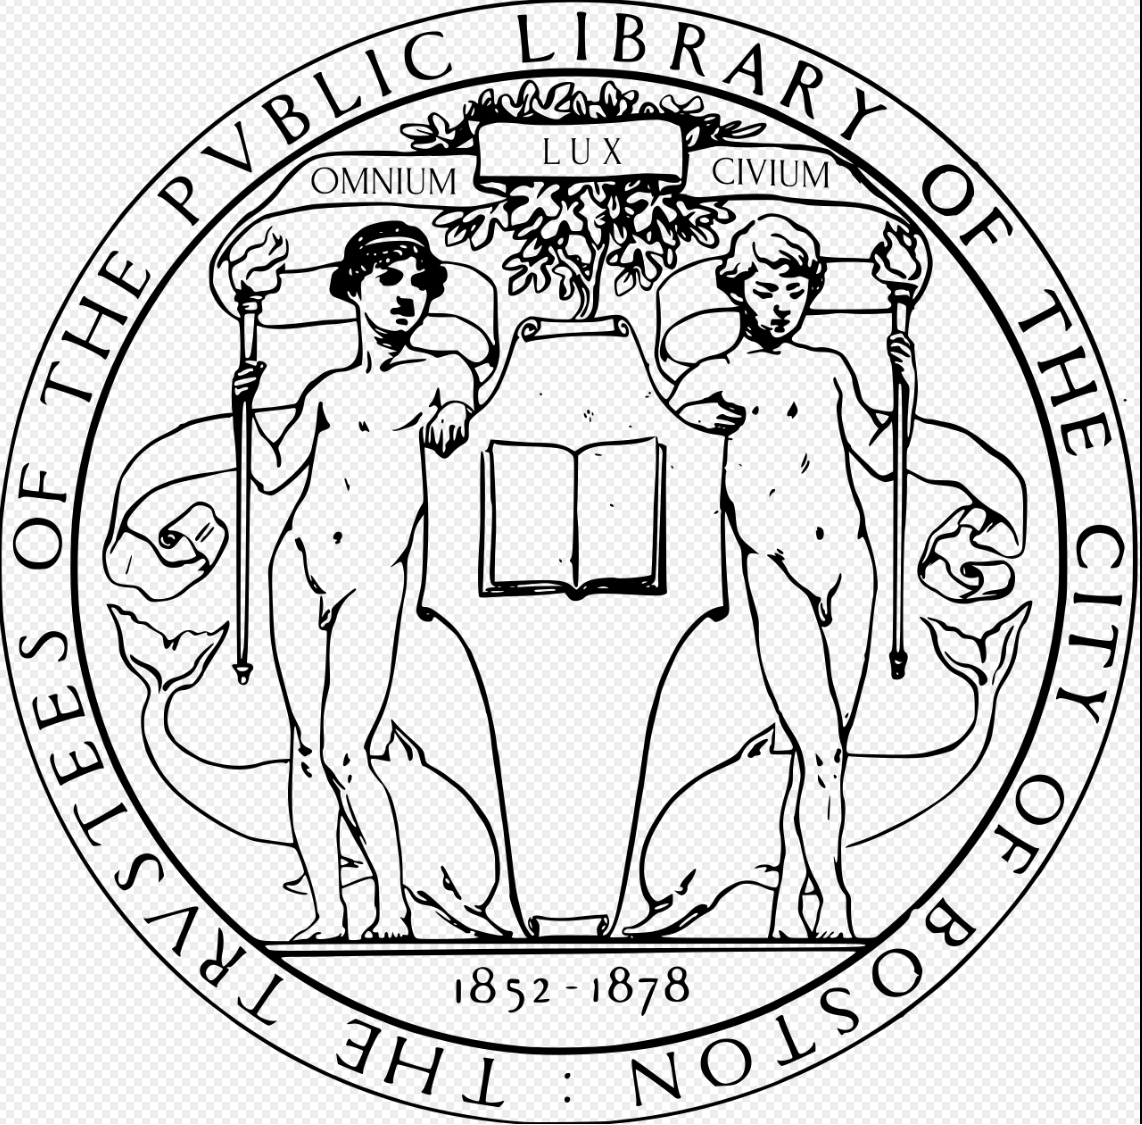 The Seal of the Trustees of the Boston Public Library, as designed by Augustus Saint-Gaudens